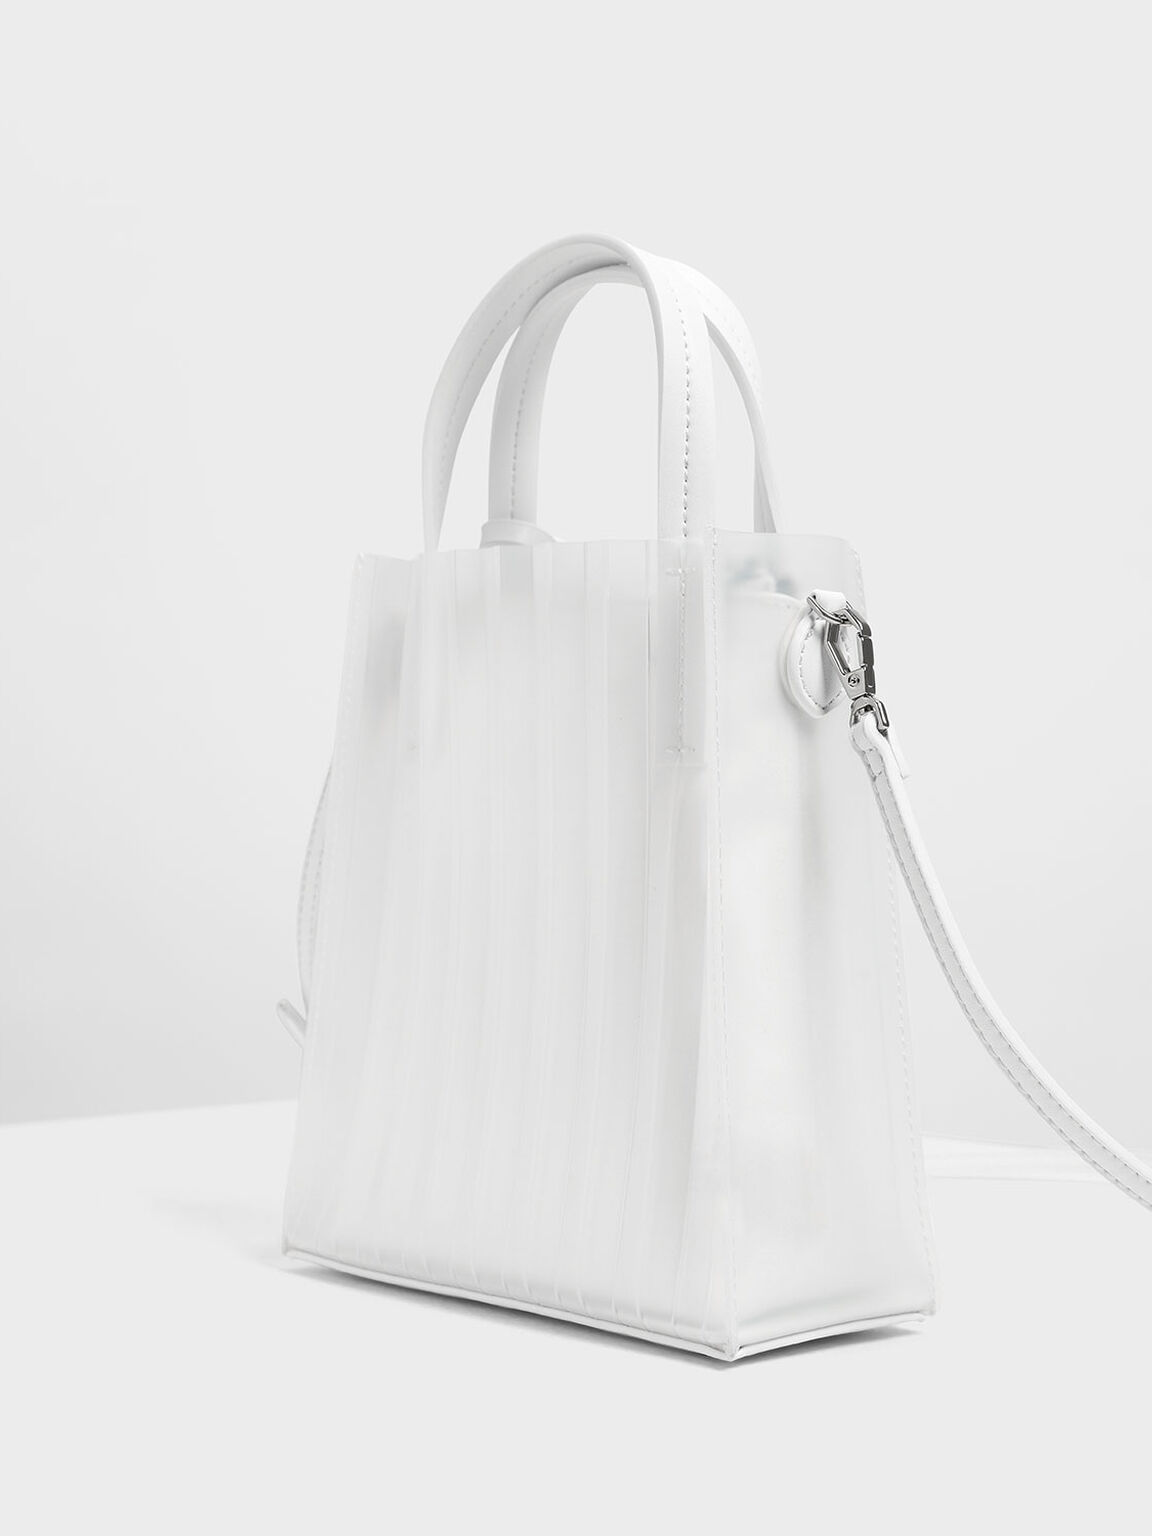 Translucent Tote Bag, White, hi-res